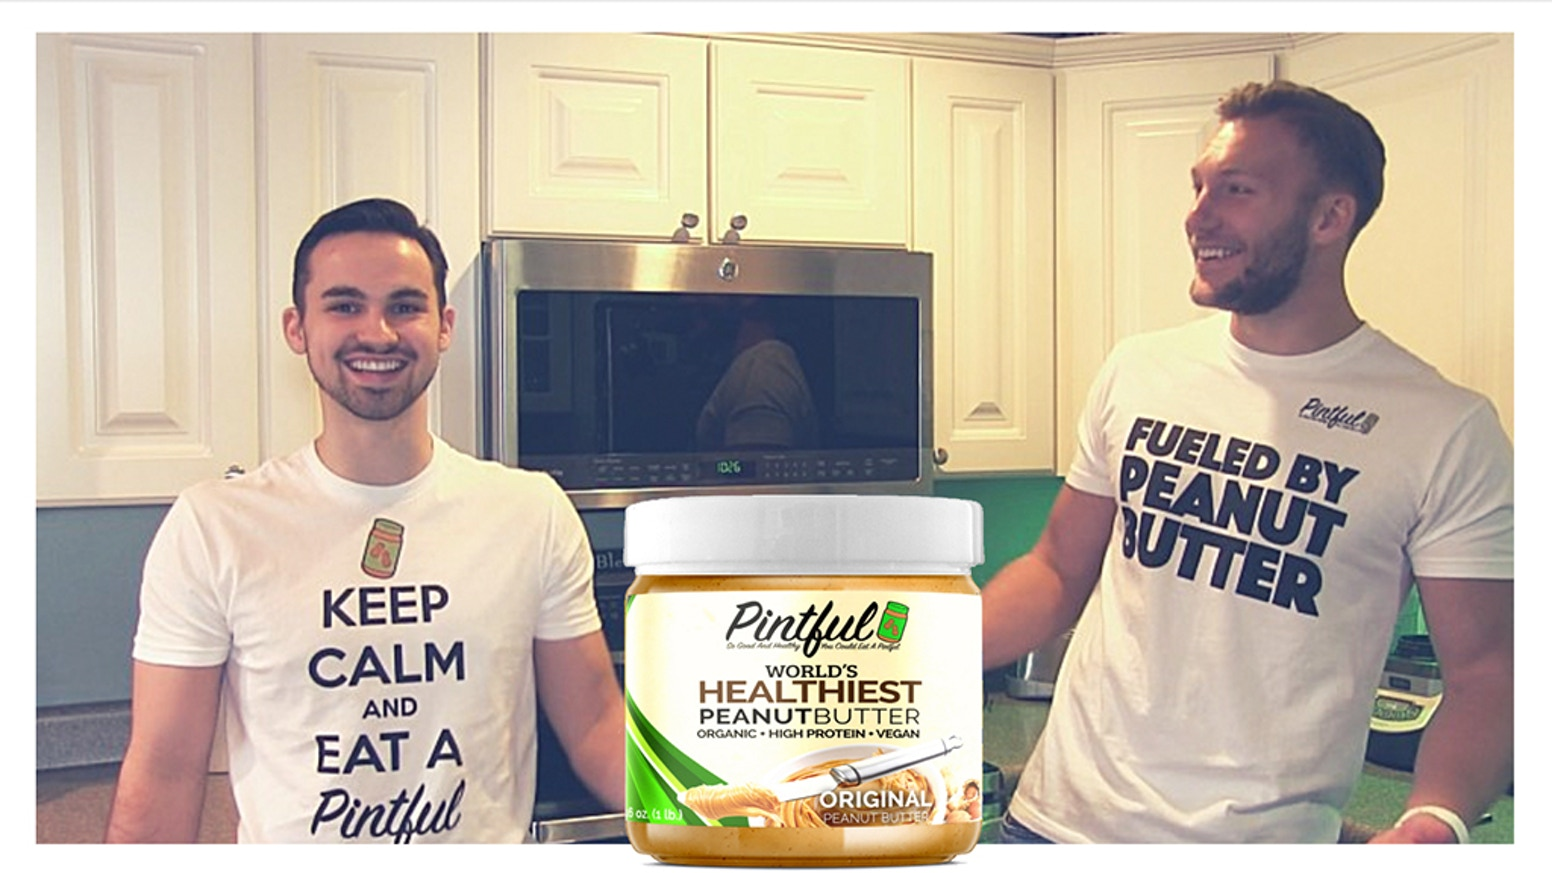 The Only Peanut Butter with 50% More Protein with No Added Sugars, Preservatives, or Oils! Get Pintful at the link below! ⬇️⬇️⬇️